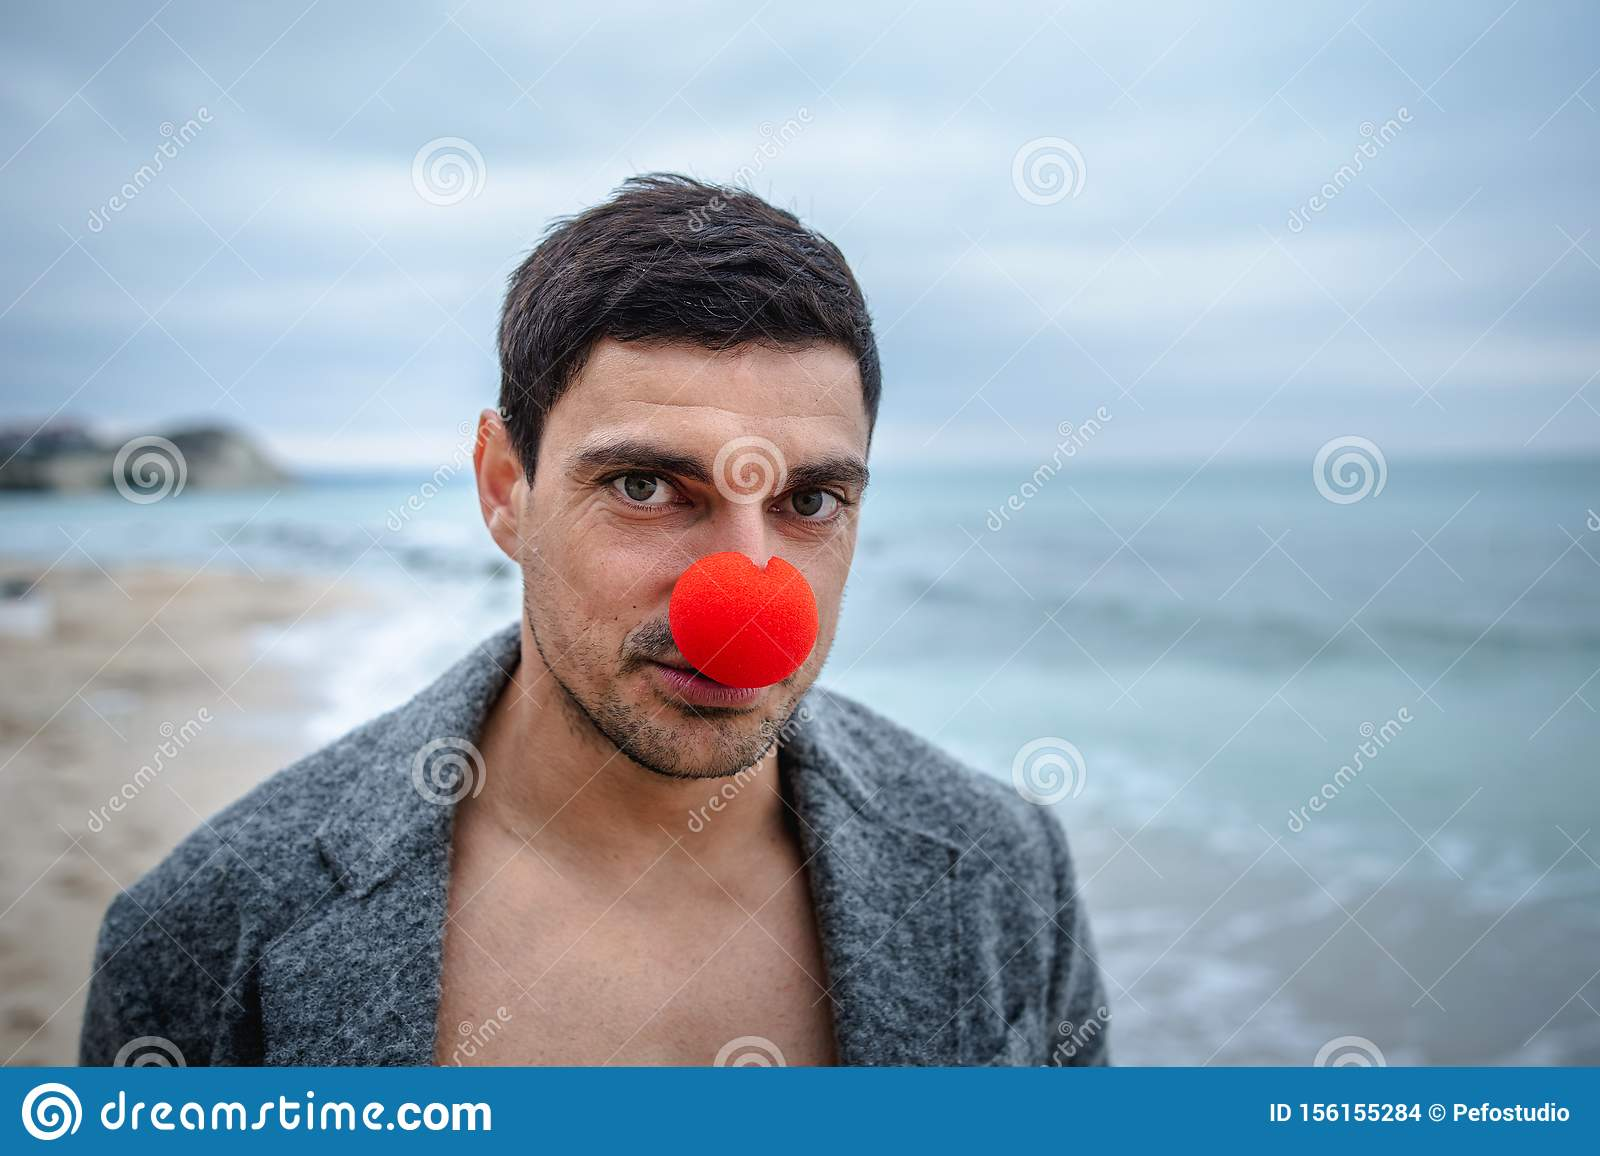 Alone Man With A Red Nose On The Beach Stock Photo